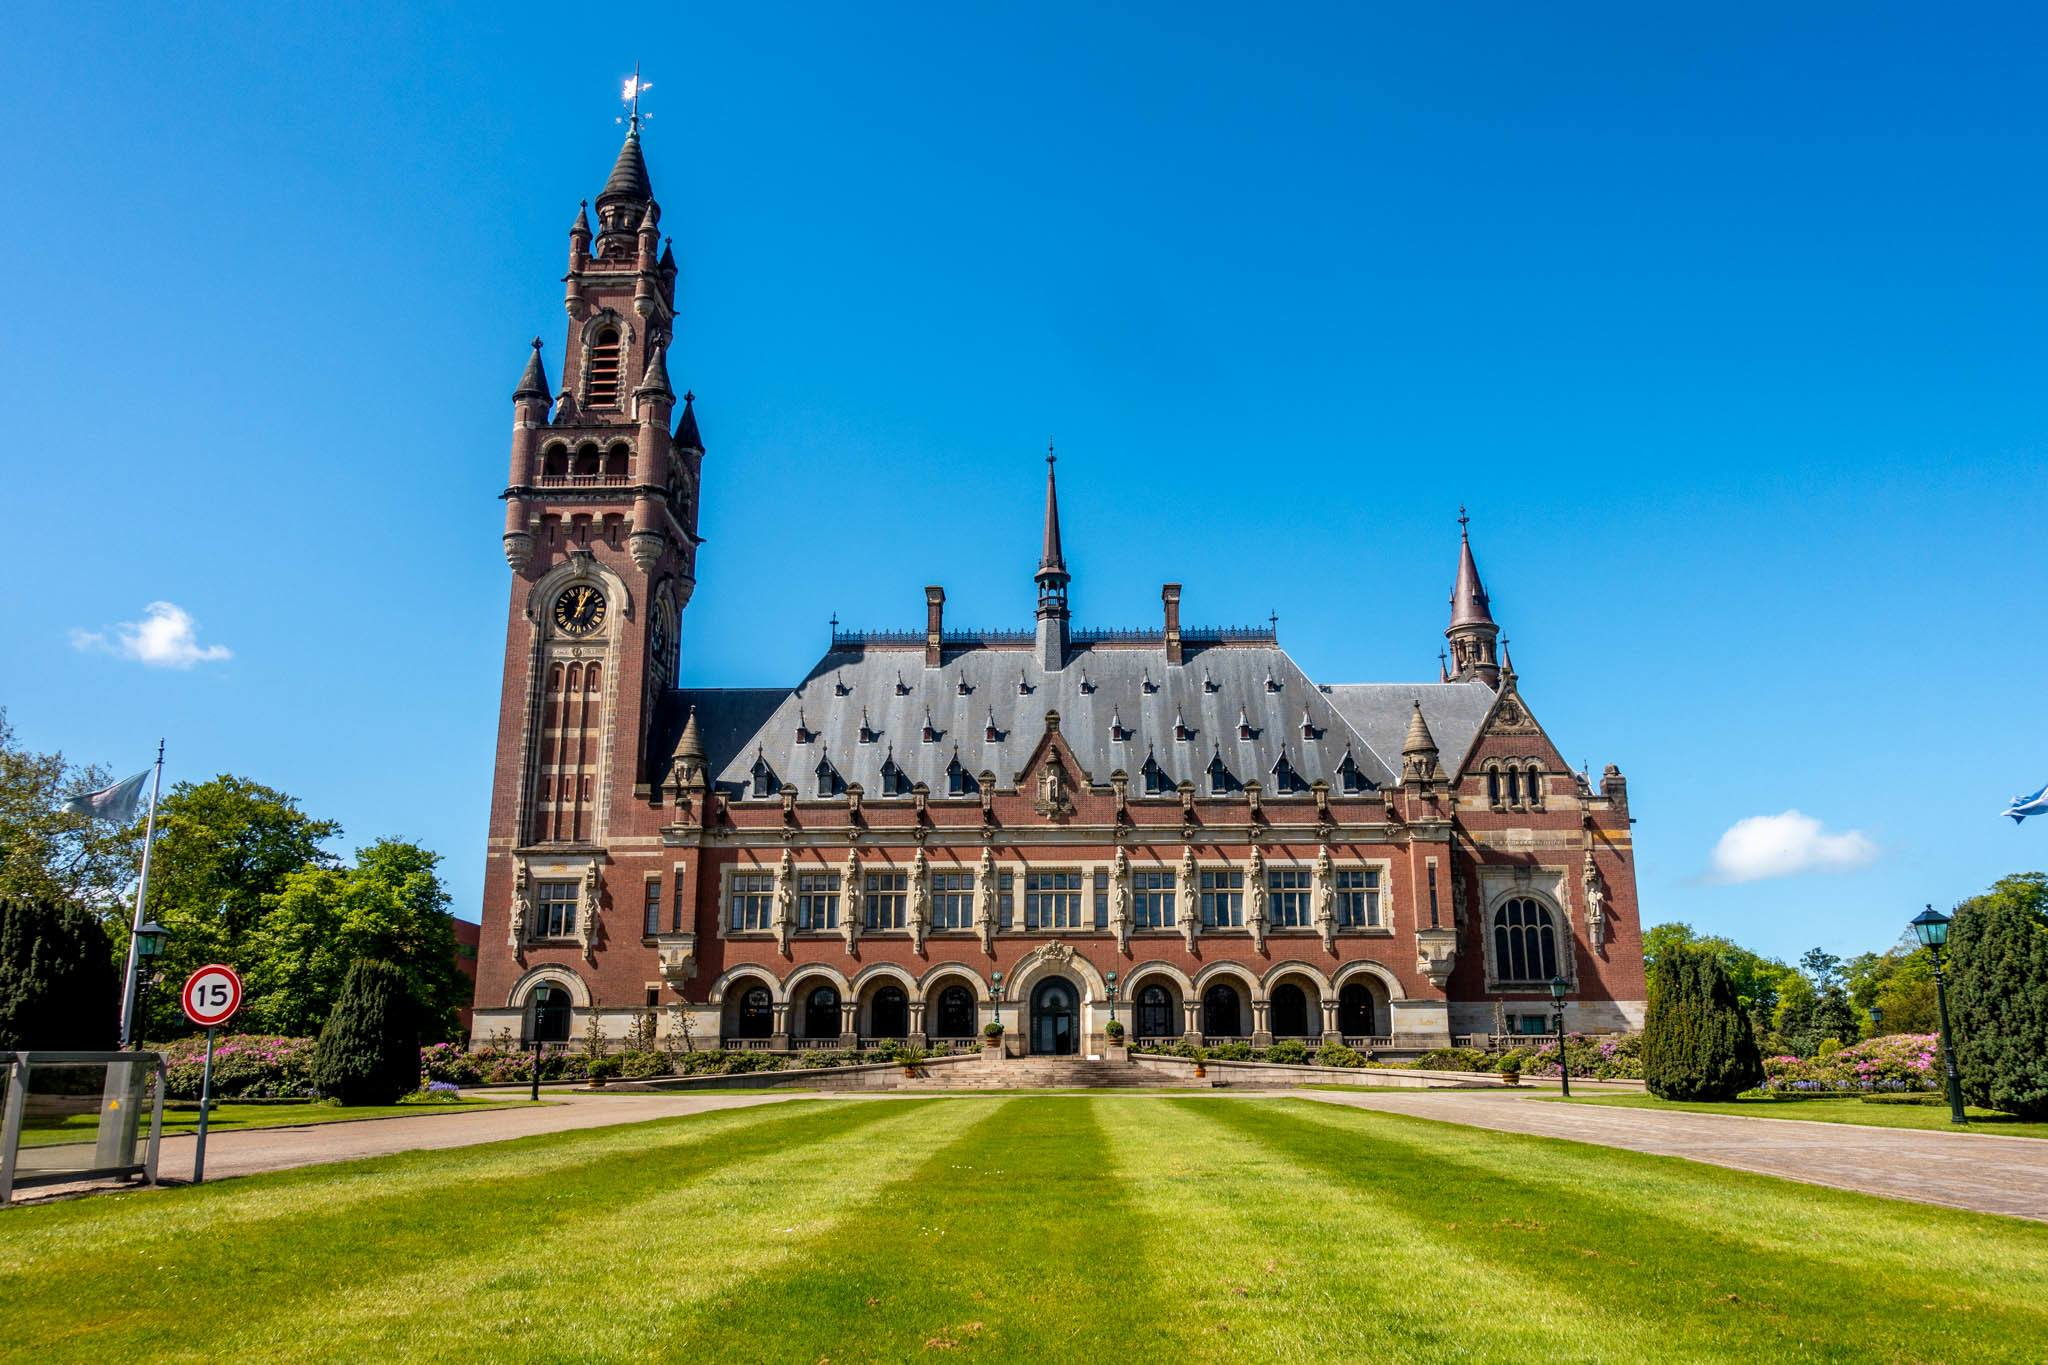 Large brick building with a clock tower, the Peace Palace in The Hague